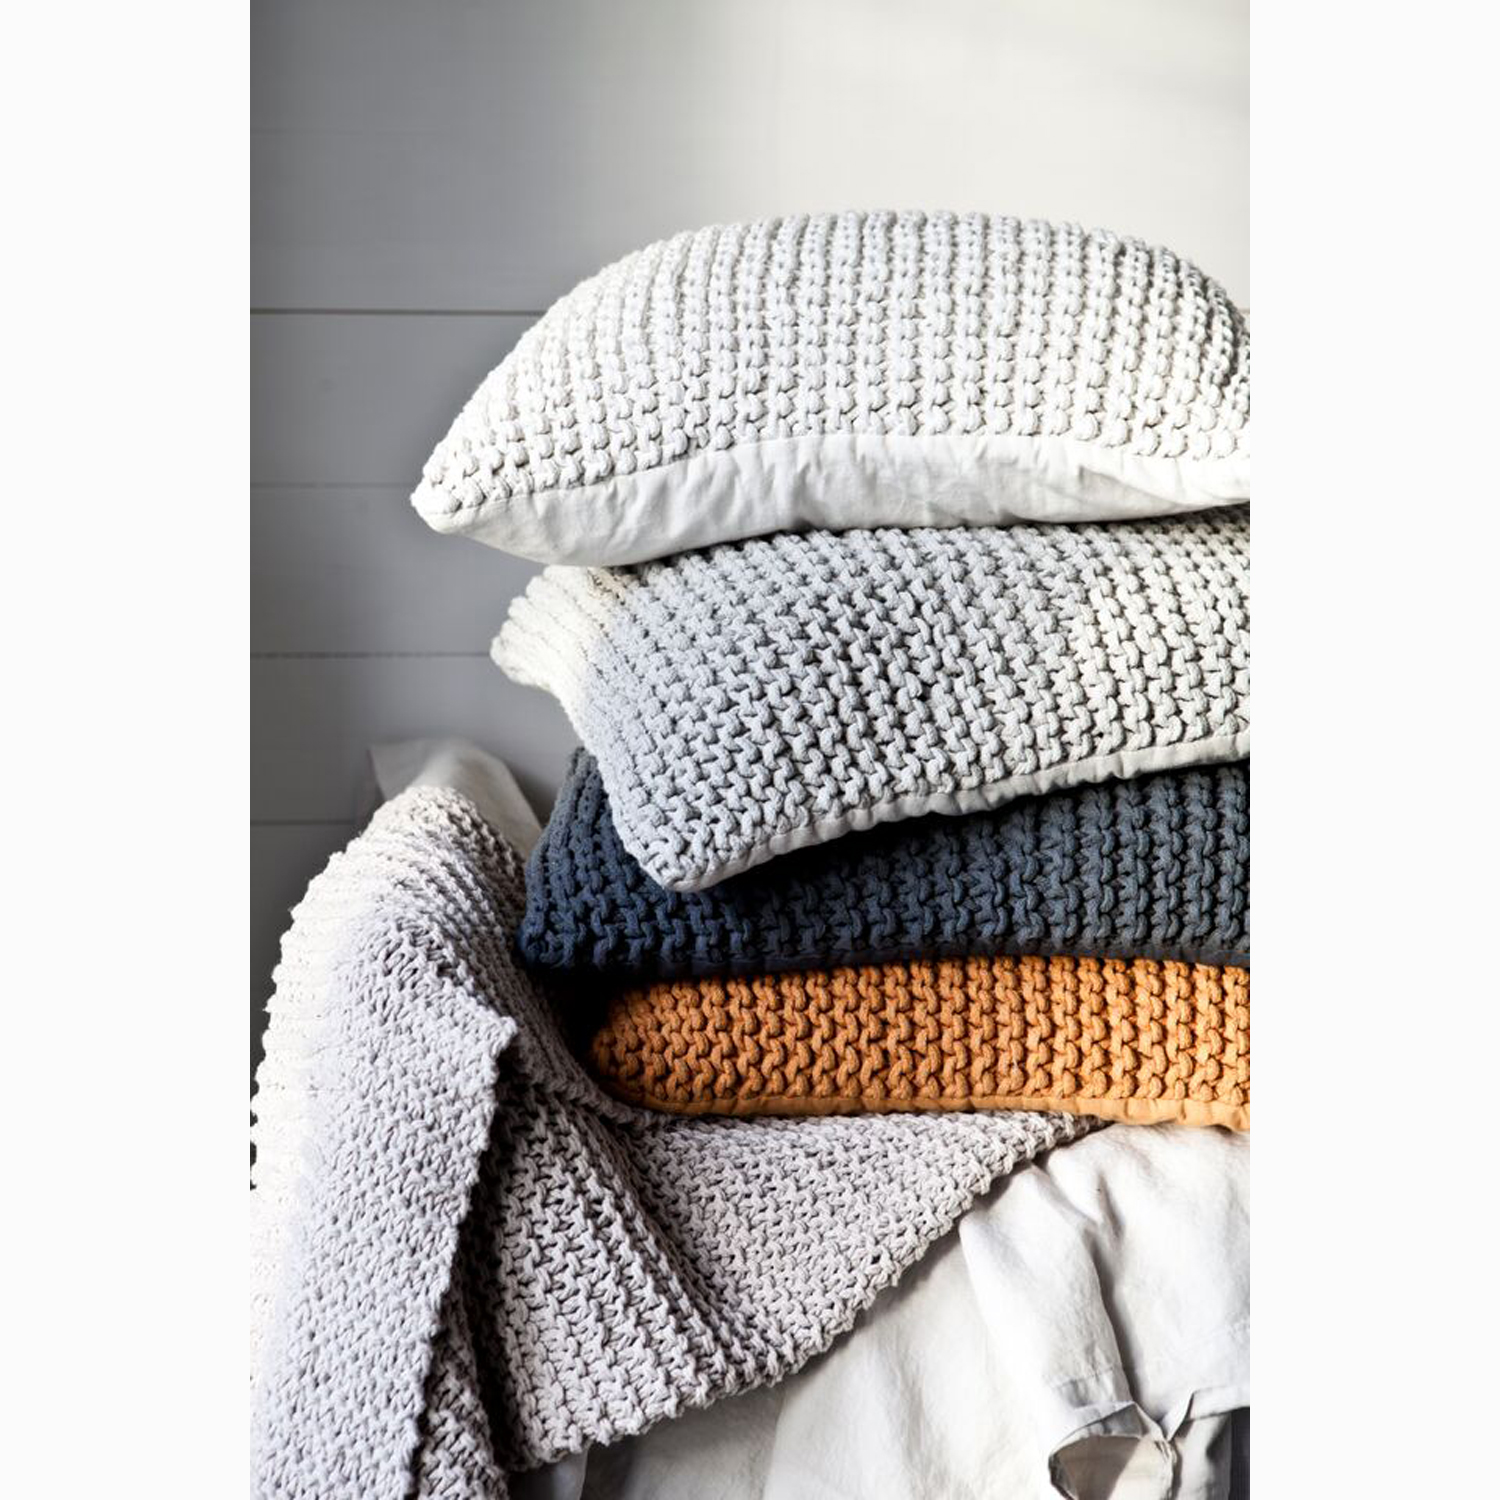 Knitted filt 170x130, offwhite